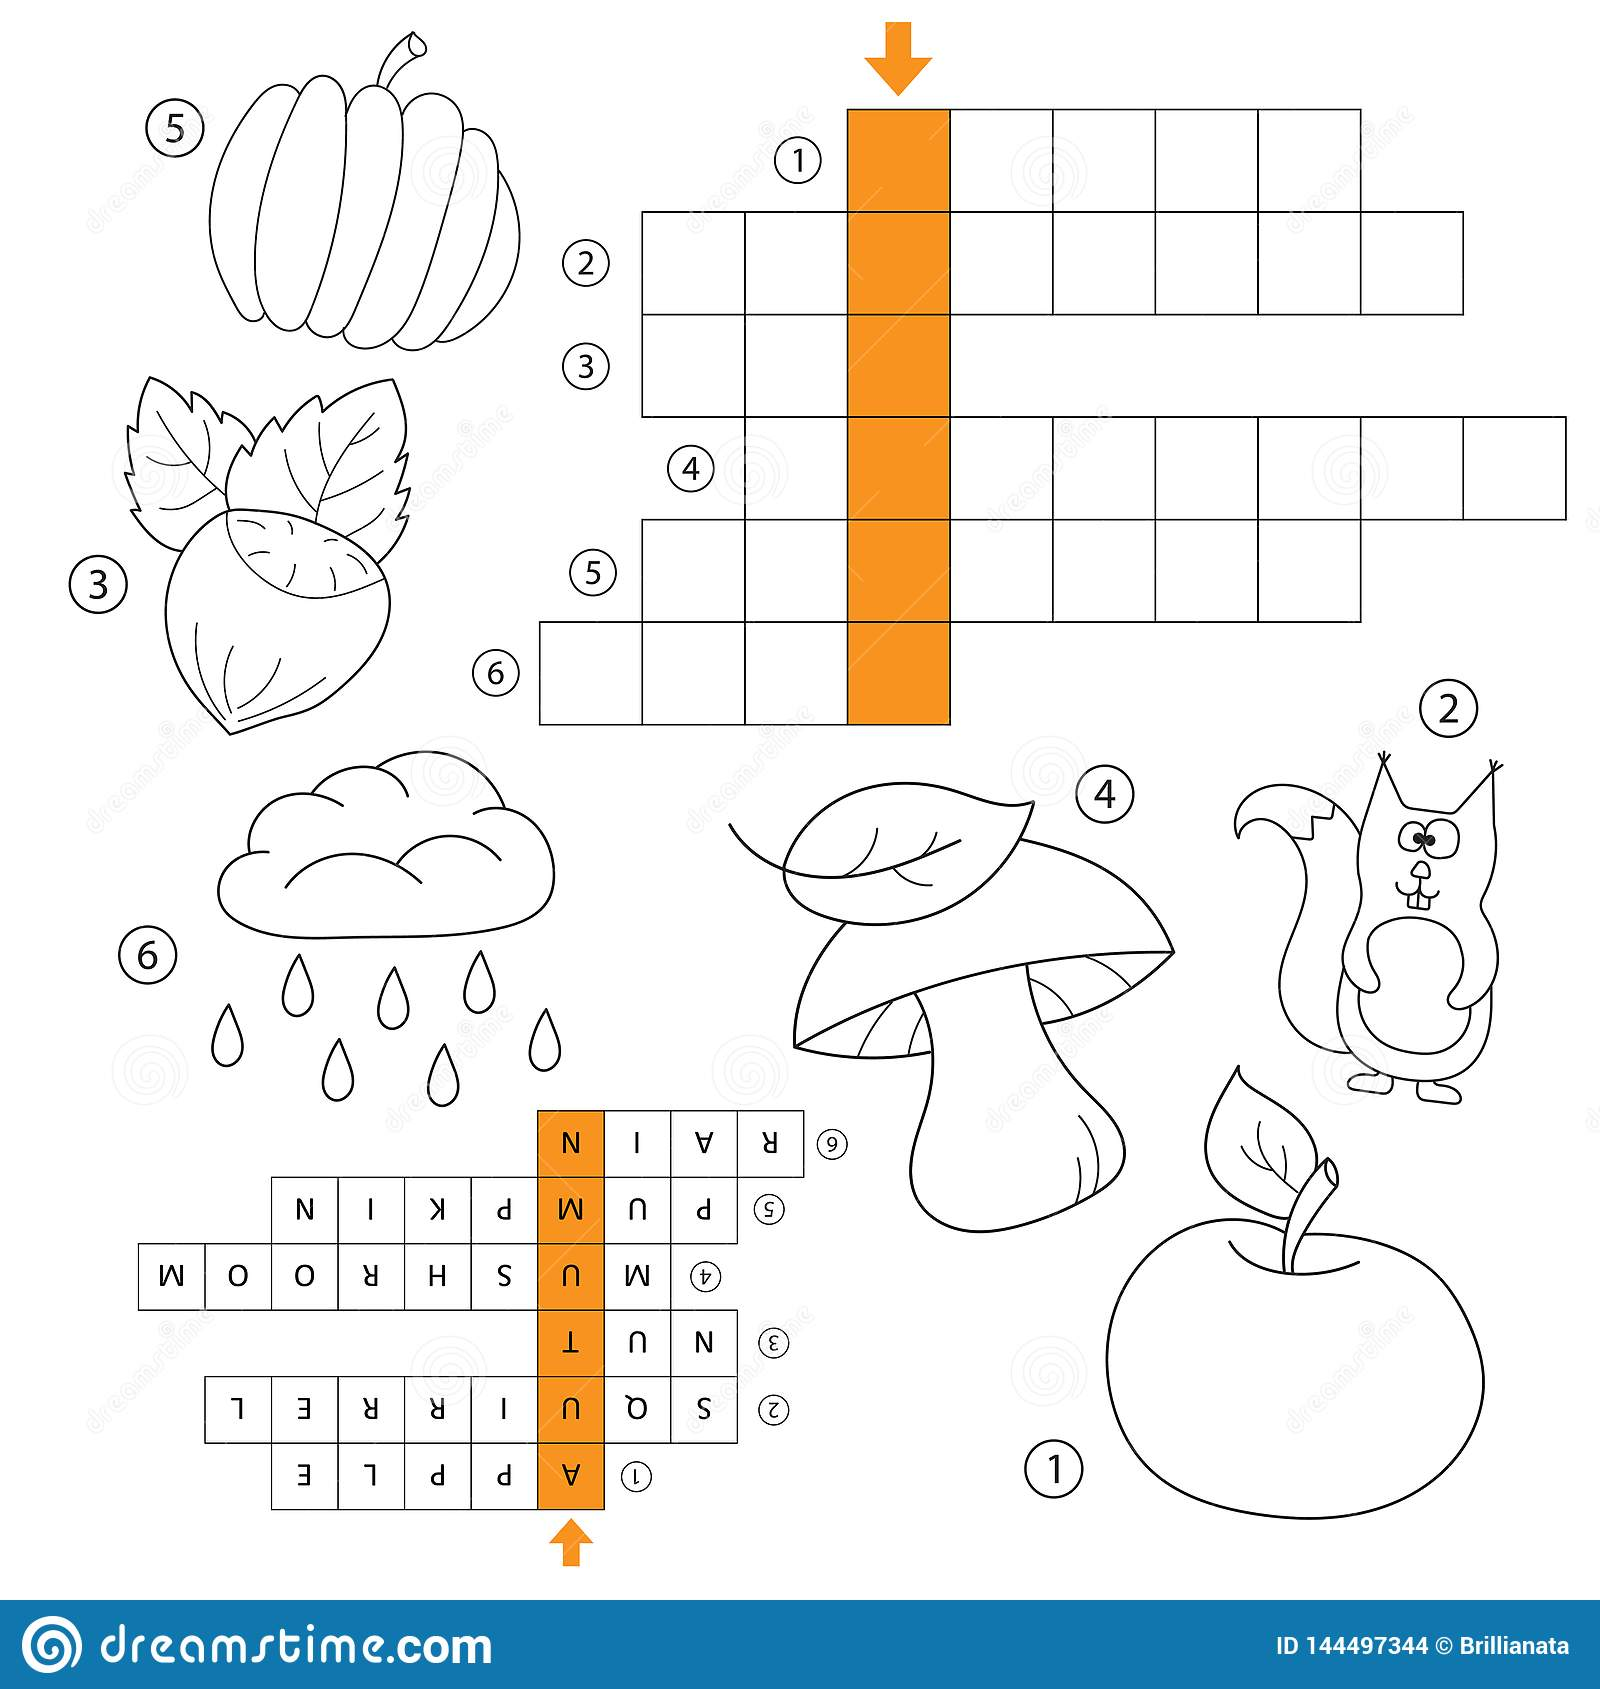 hight resolution of learn english autumn word game for kids vector crossword for kids task and answer coloring book for children of preschool and school age